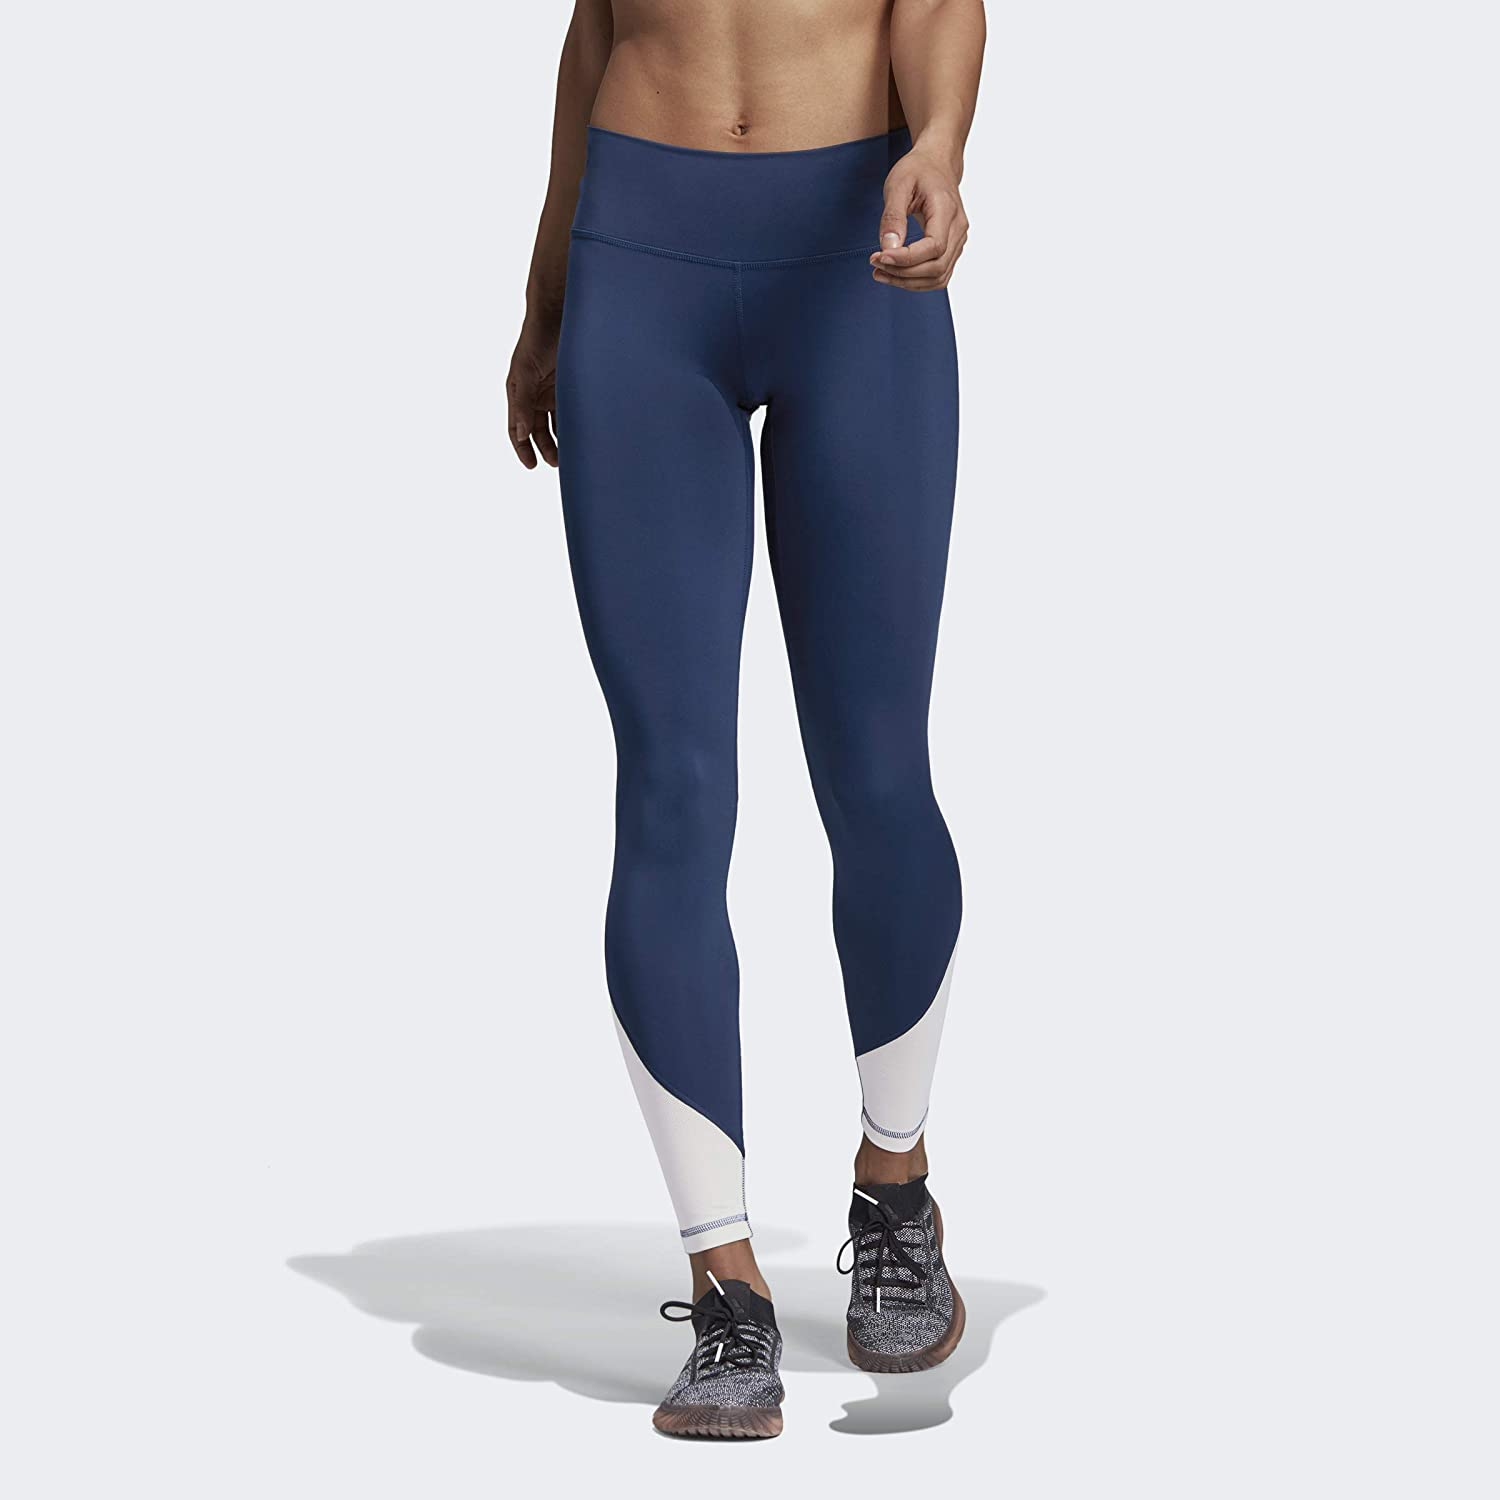 adidas Women's Believe This High Tights Long Elevated half Rise Max 76% OFF